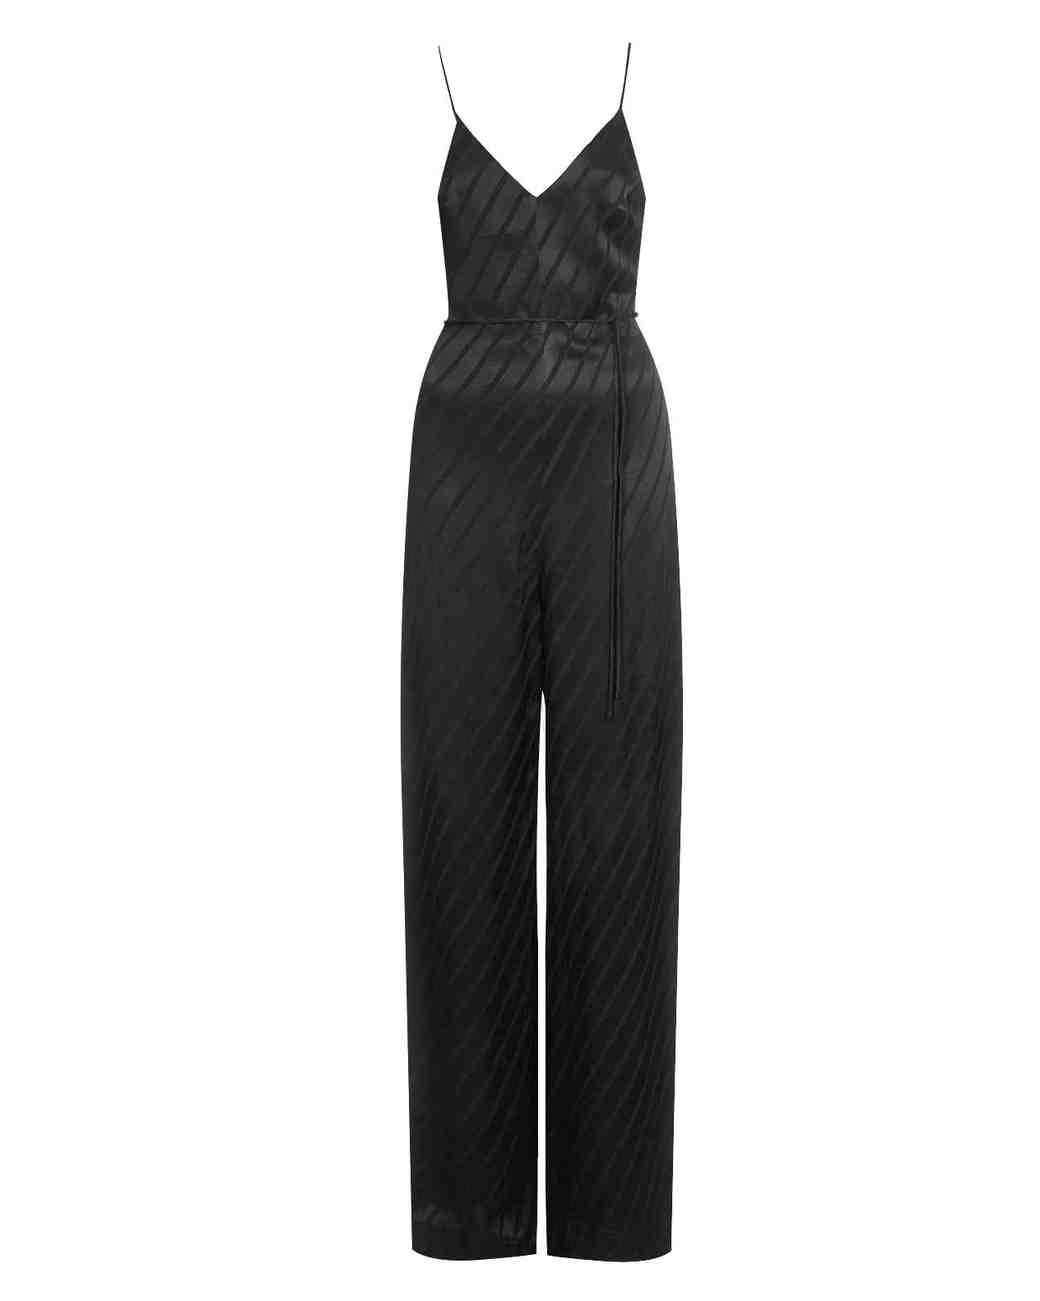 guest-wedding-outfits-topshop-shadow-stripe-jumpsuit-0614.jpg